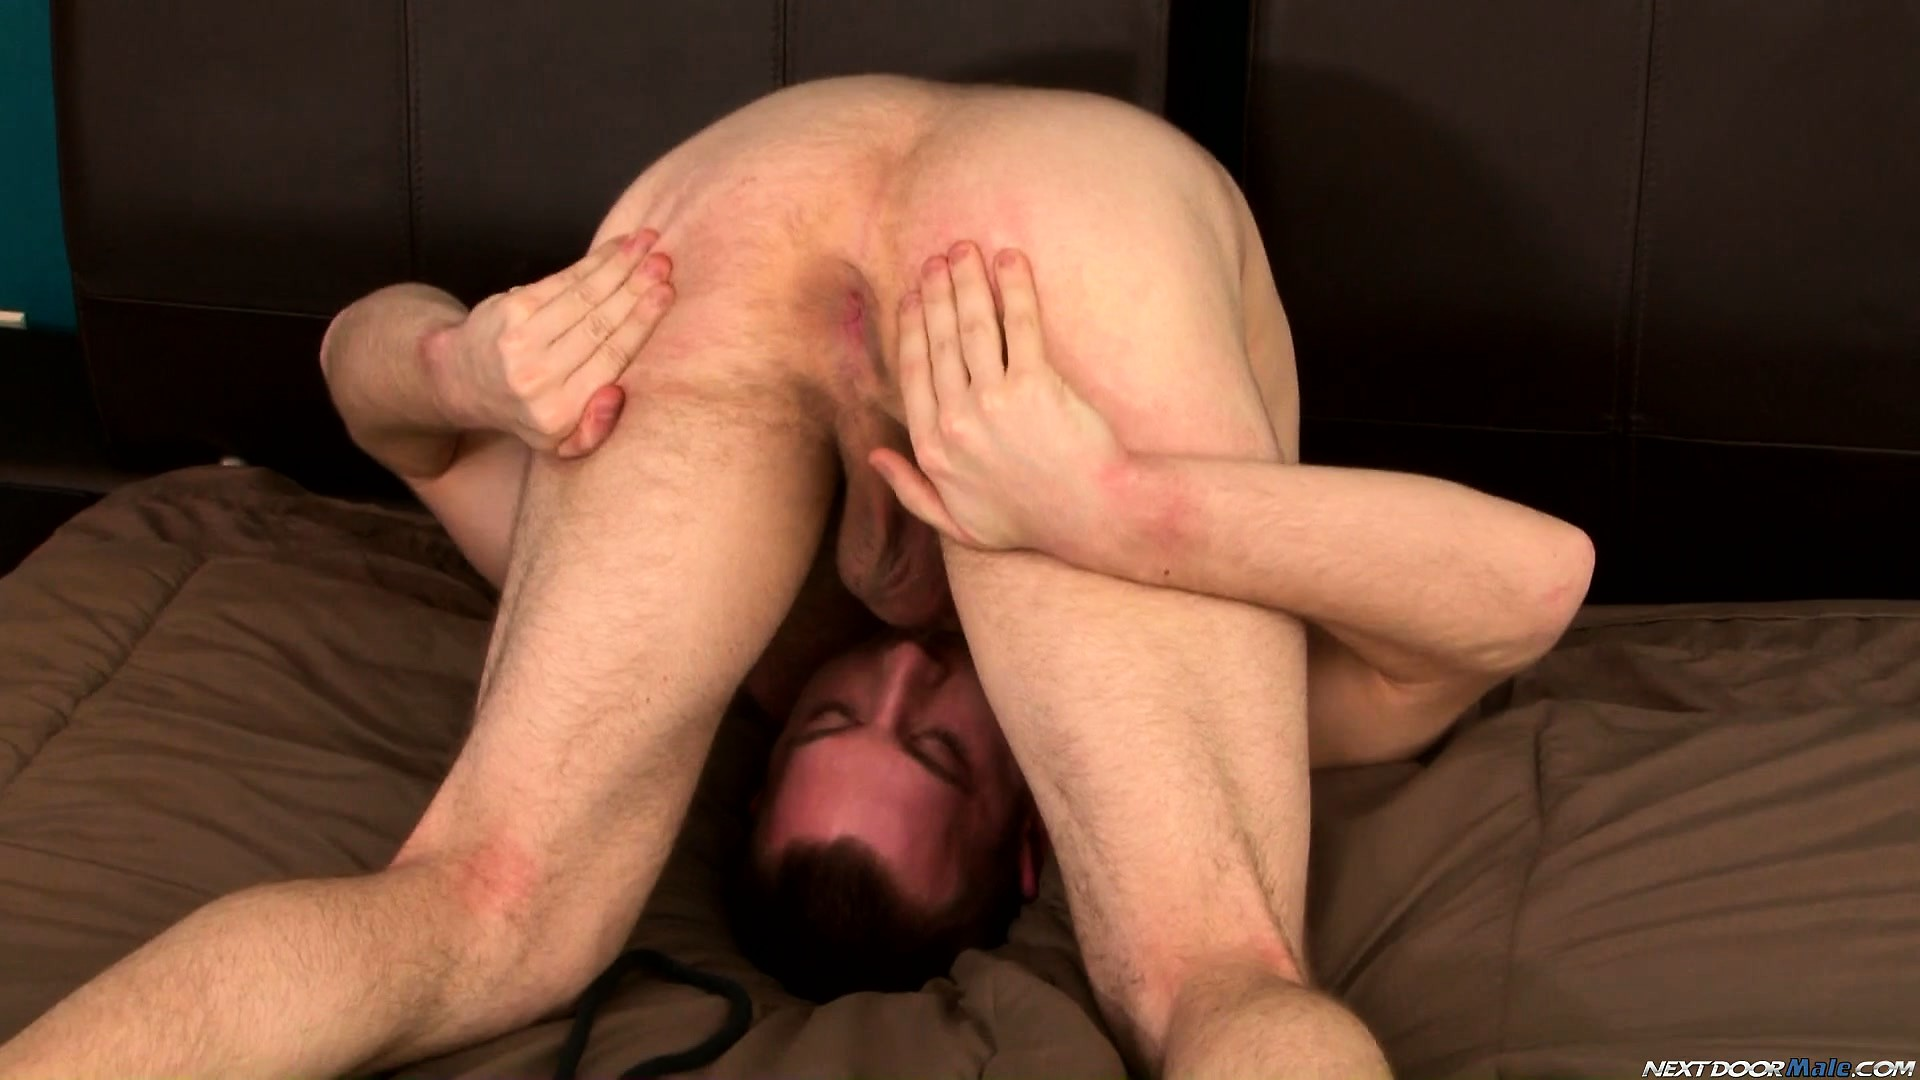 Porno Video of Hairy Dude Cody Allen Performs Amazing And Irresistible Autofellatio